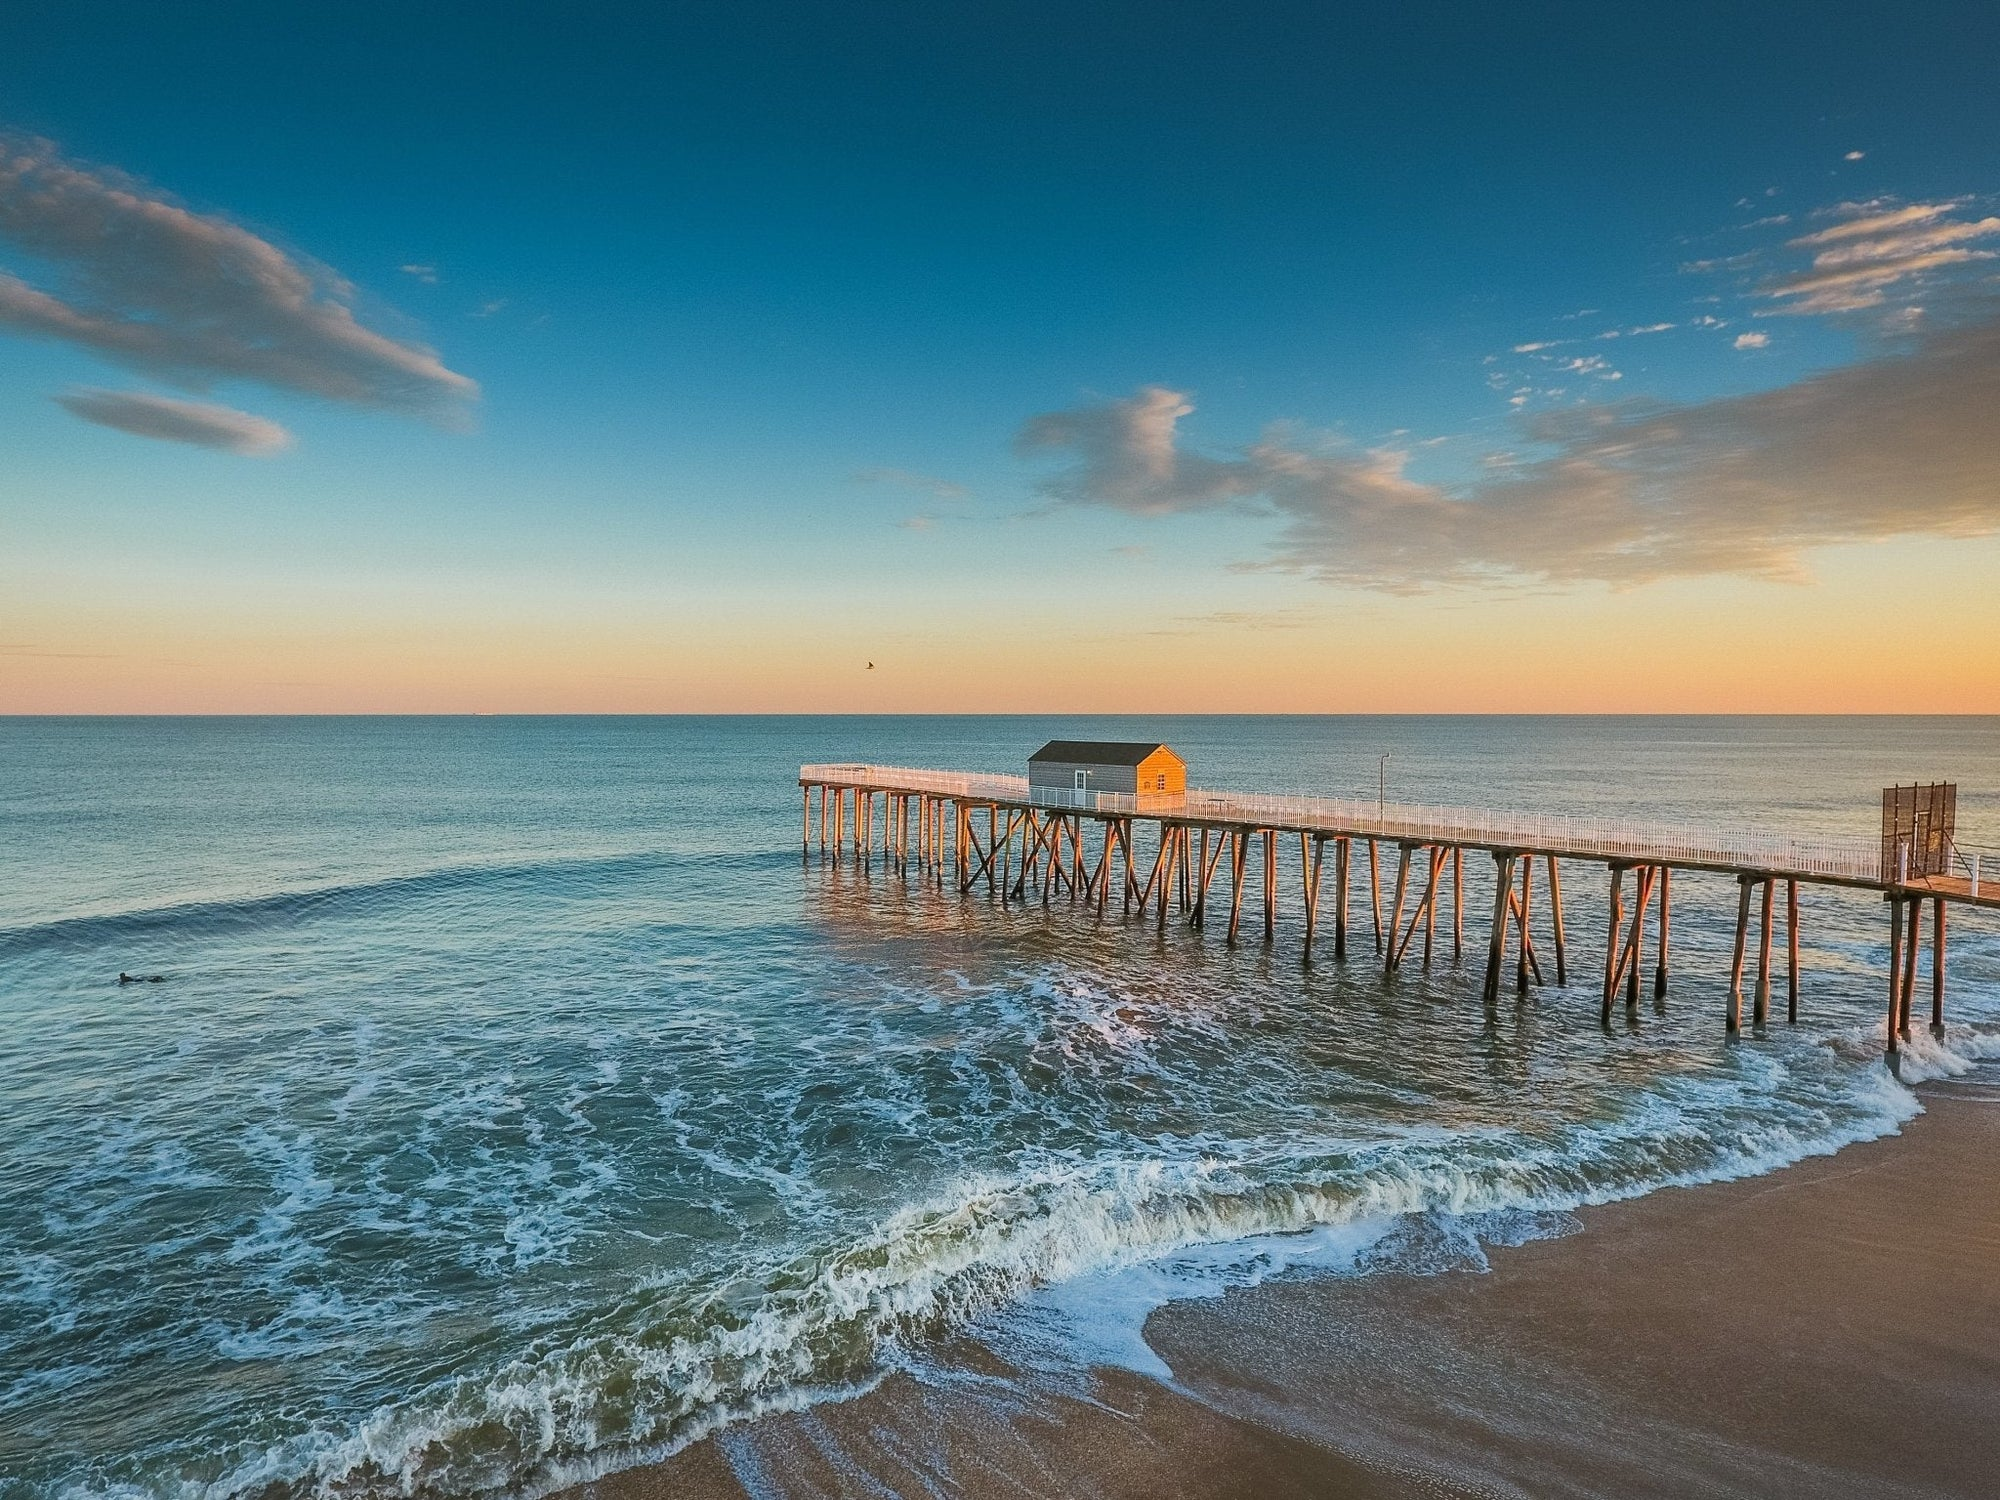 In Stock Belmar Fishing Pier 22 19 Matted and Framed in White - Bill McKim Photography -Jersey Shore whale watch tours